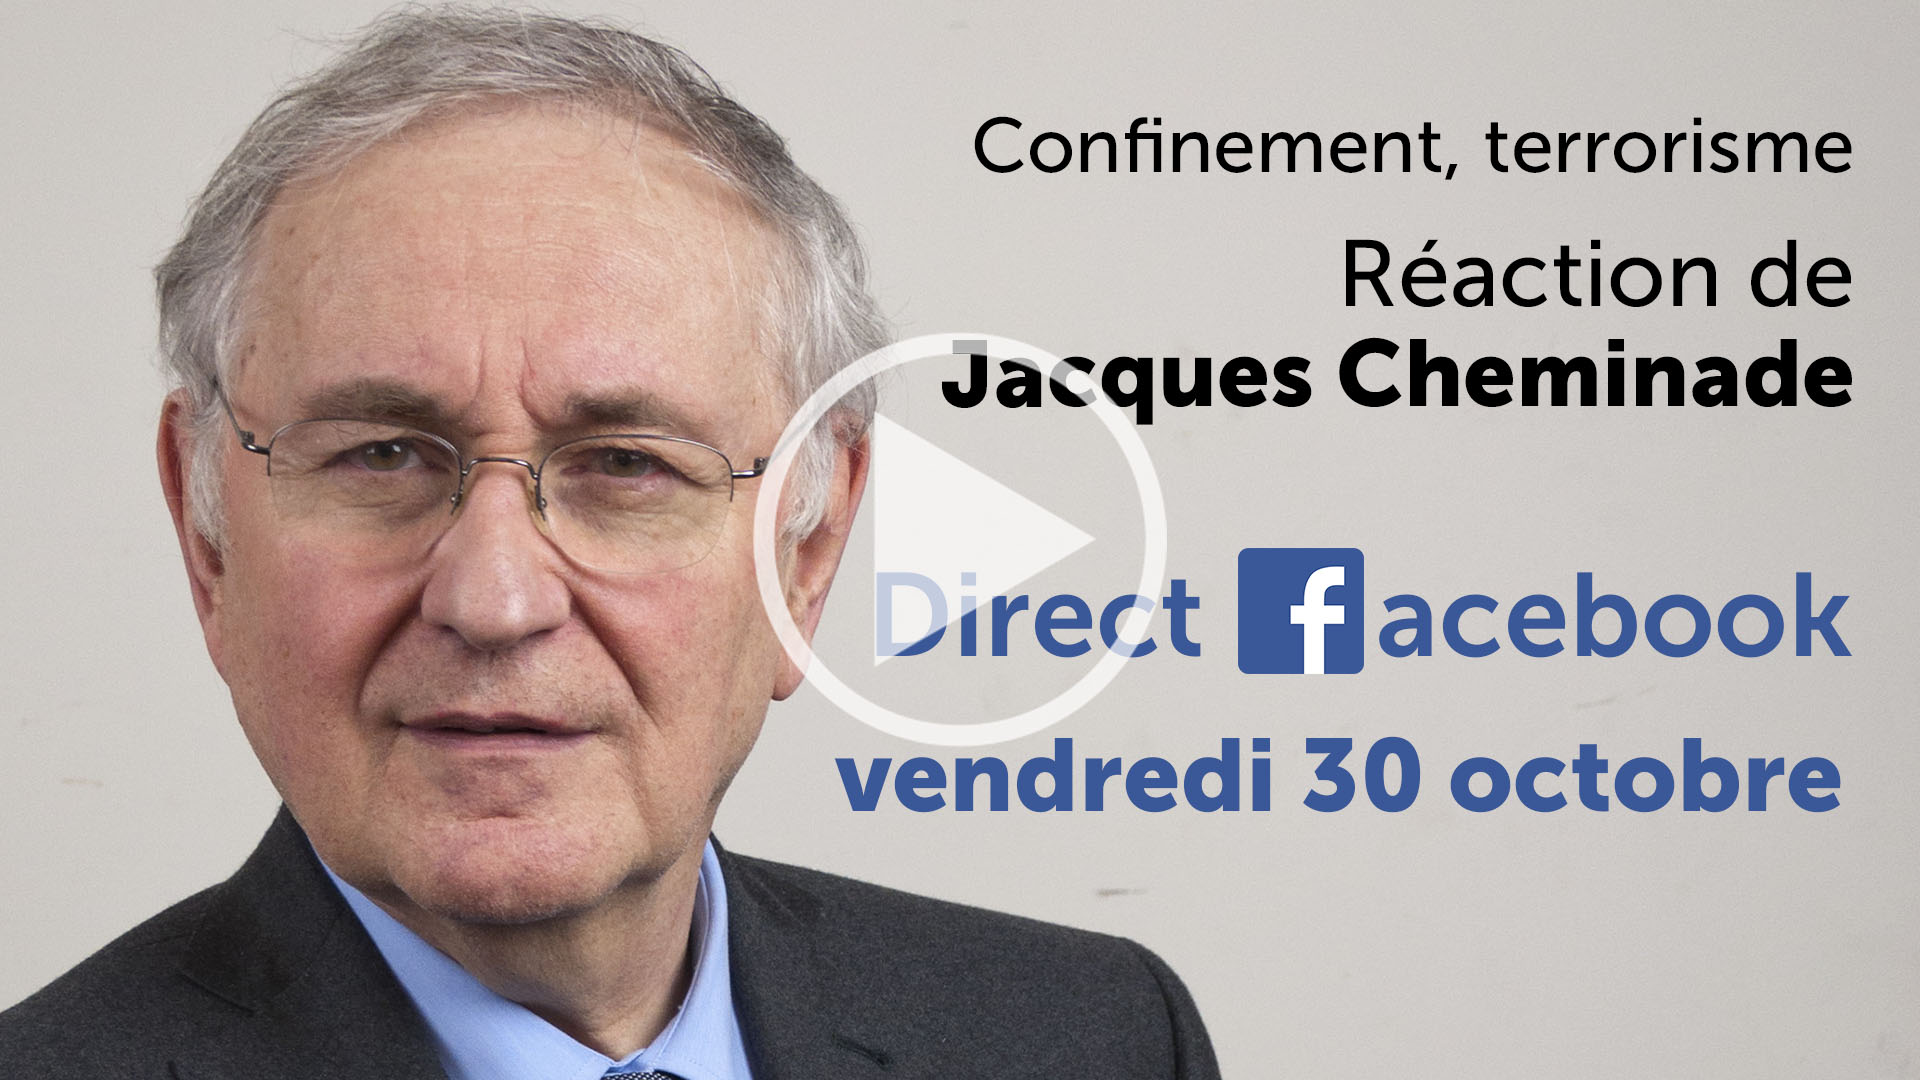 Confinement, terrorisme : réaction de Jacques Cheminade